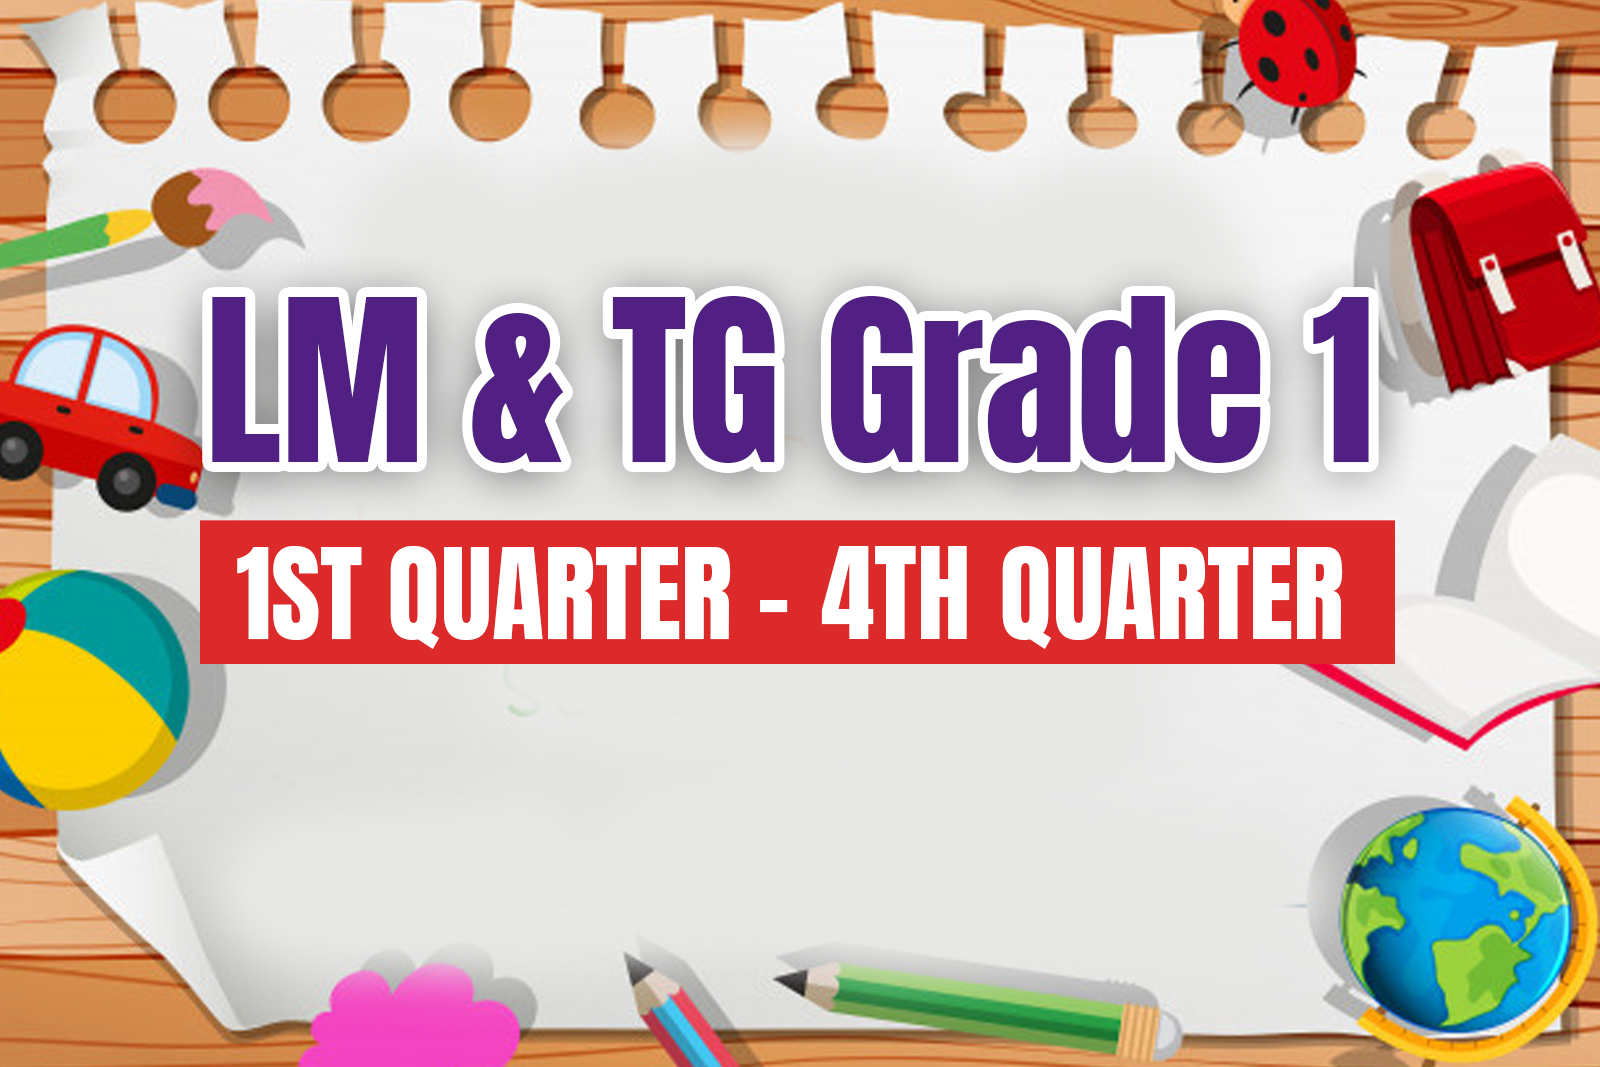 hight resolution of Learner's Material and Teachers Guide in Grade 1 (All Subjects) - mdmrara